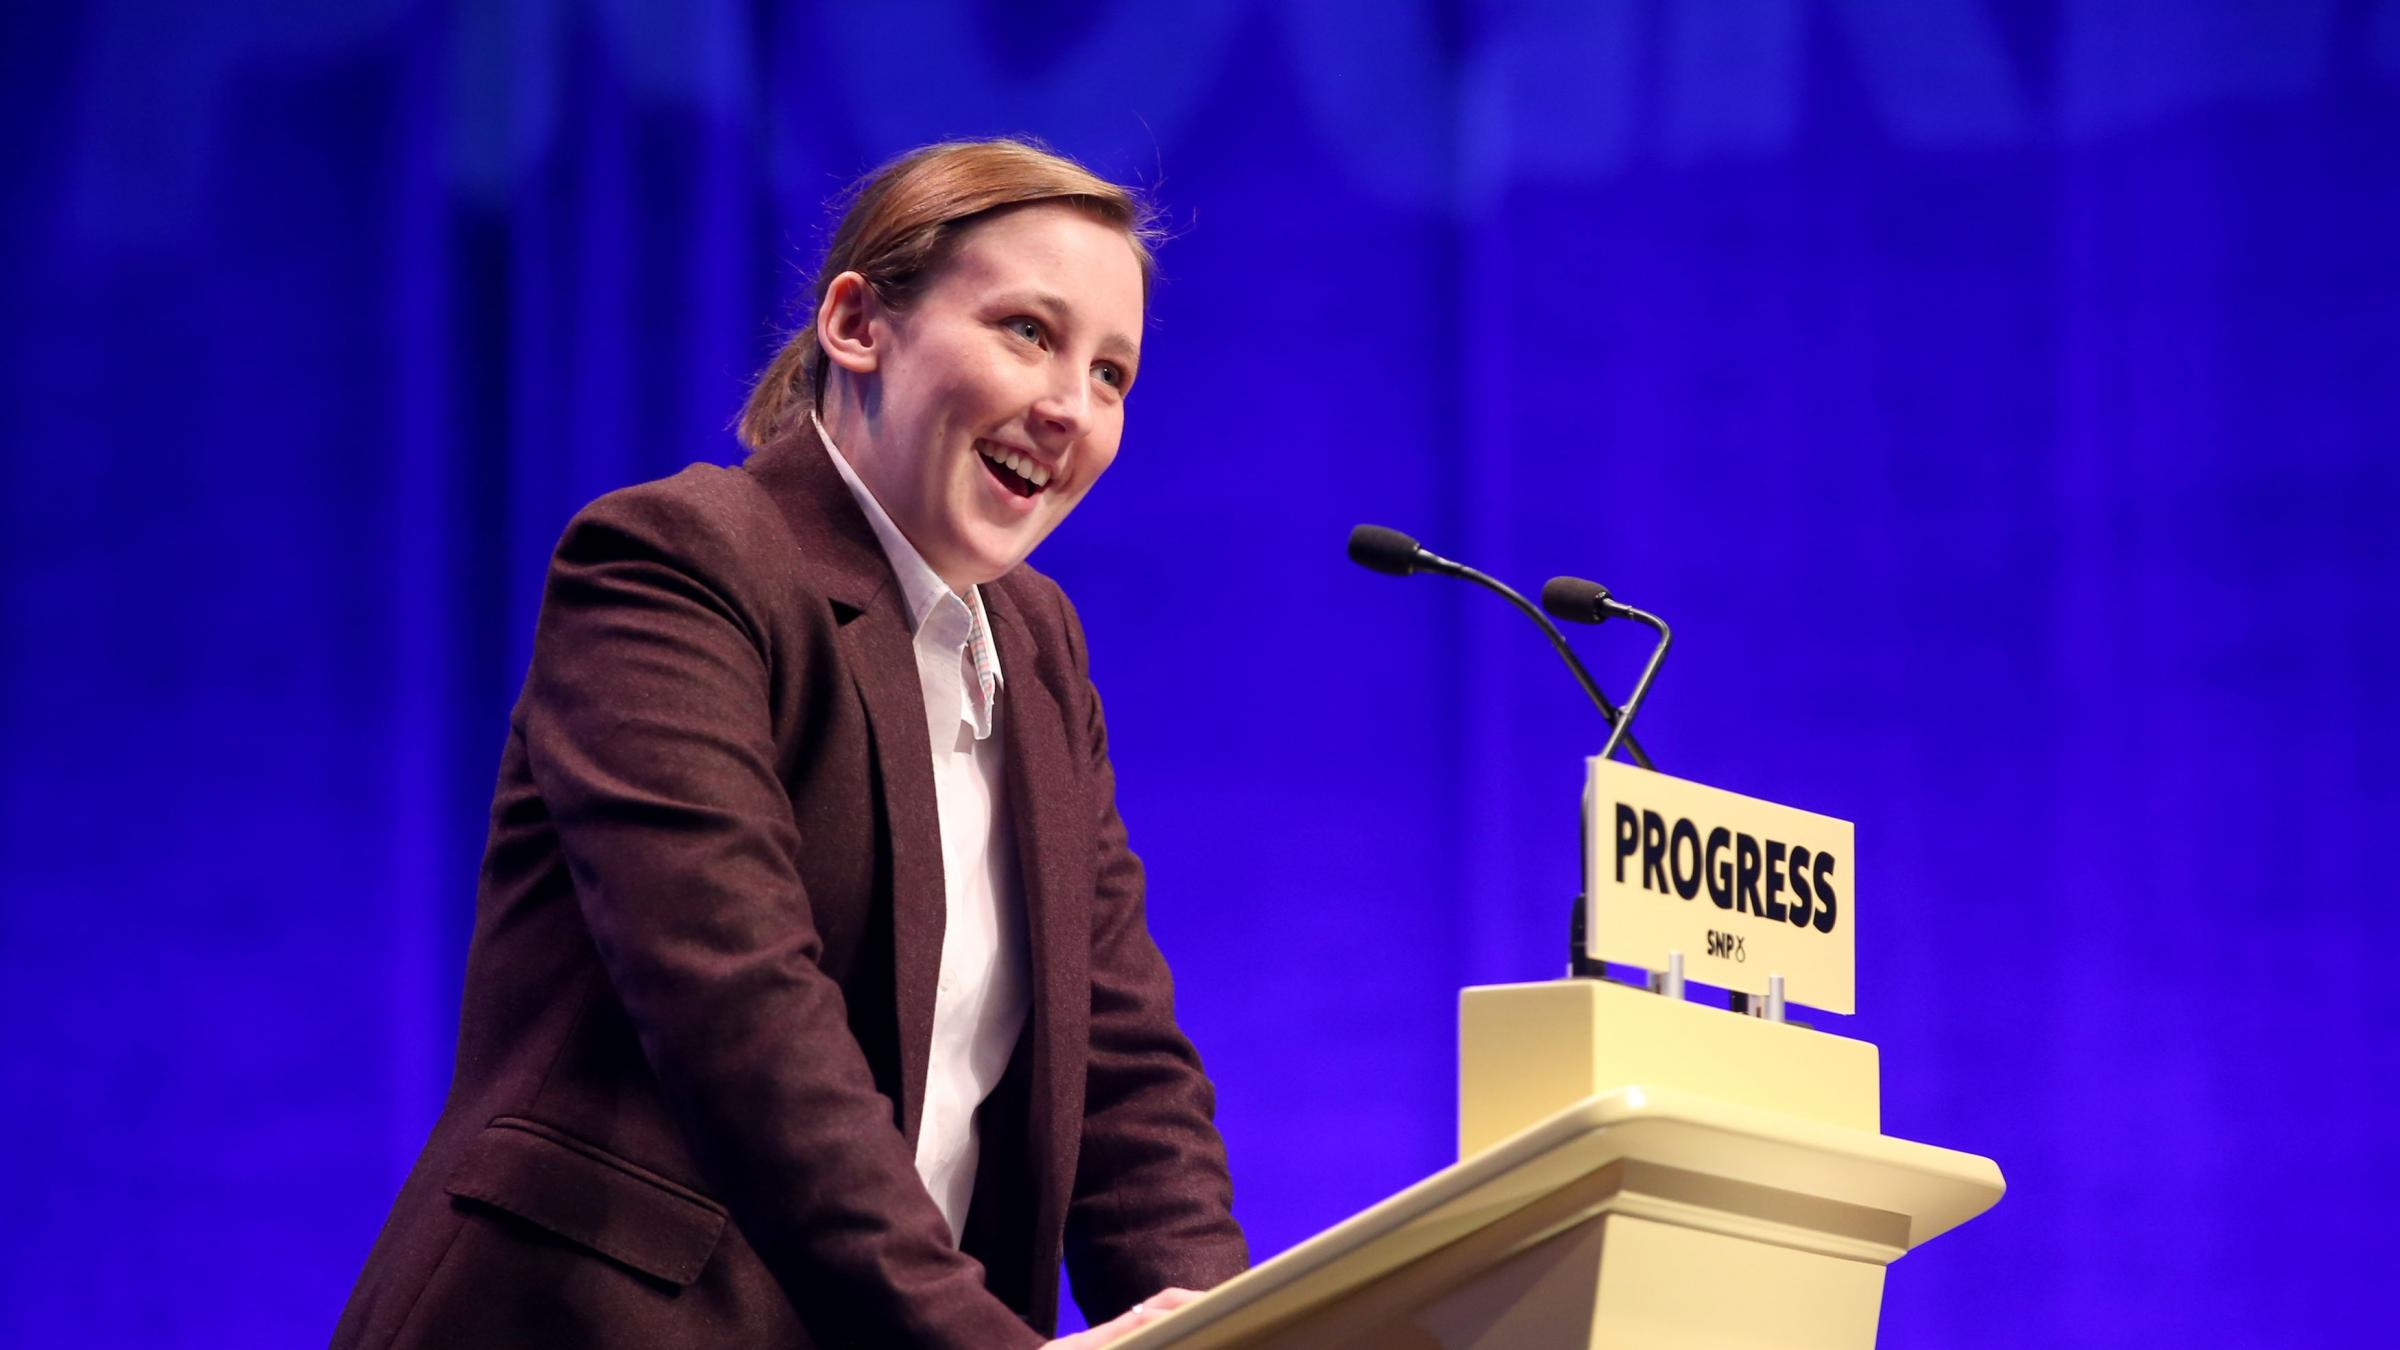 Mhairi Black reveals torrent of online misogynistic abuse